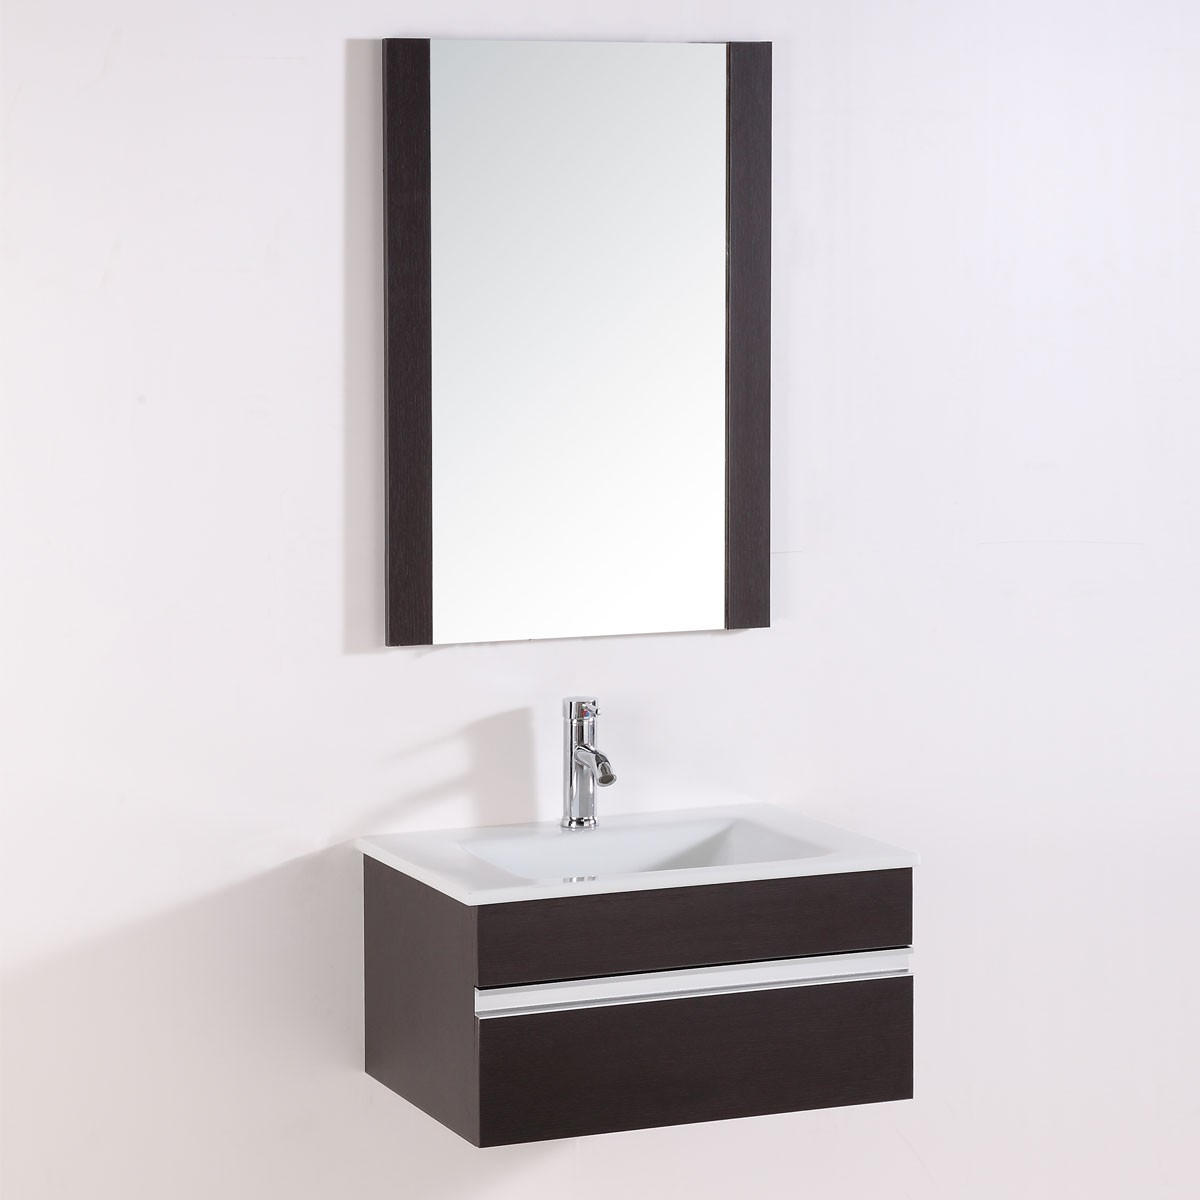 24 In. Wall-Mount Bathroom Vanity Set With Single Sink And Mirror (DK